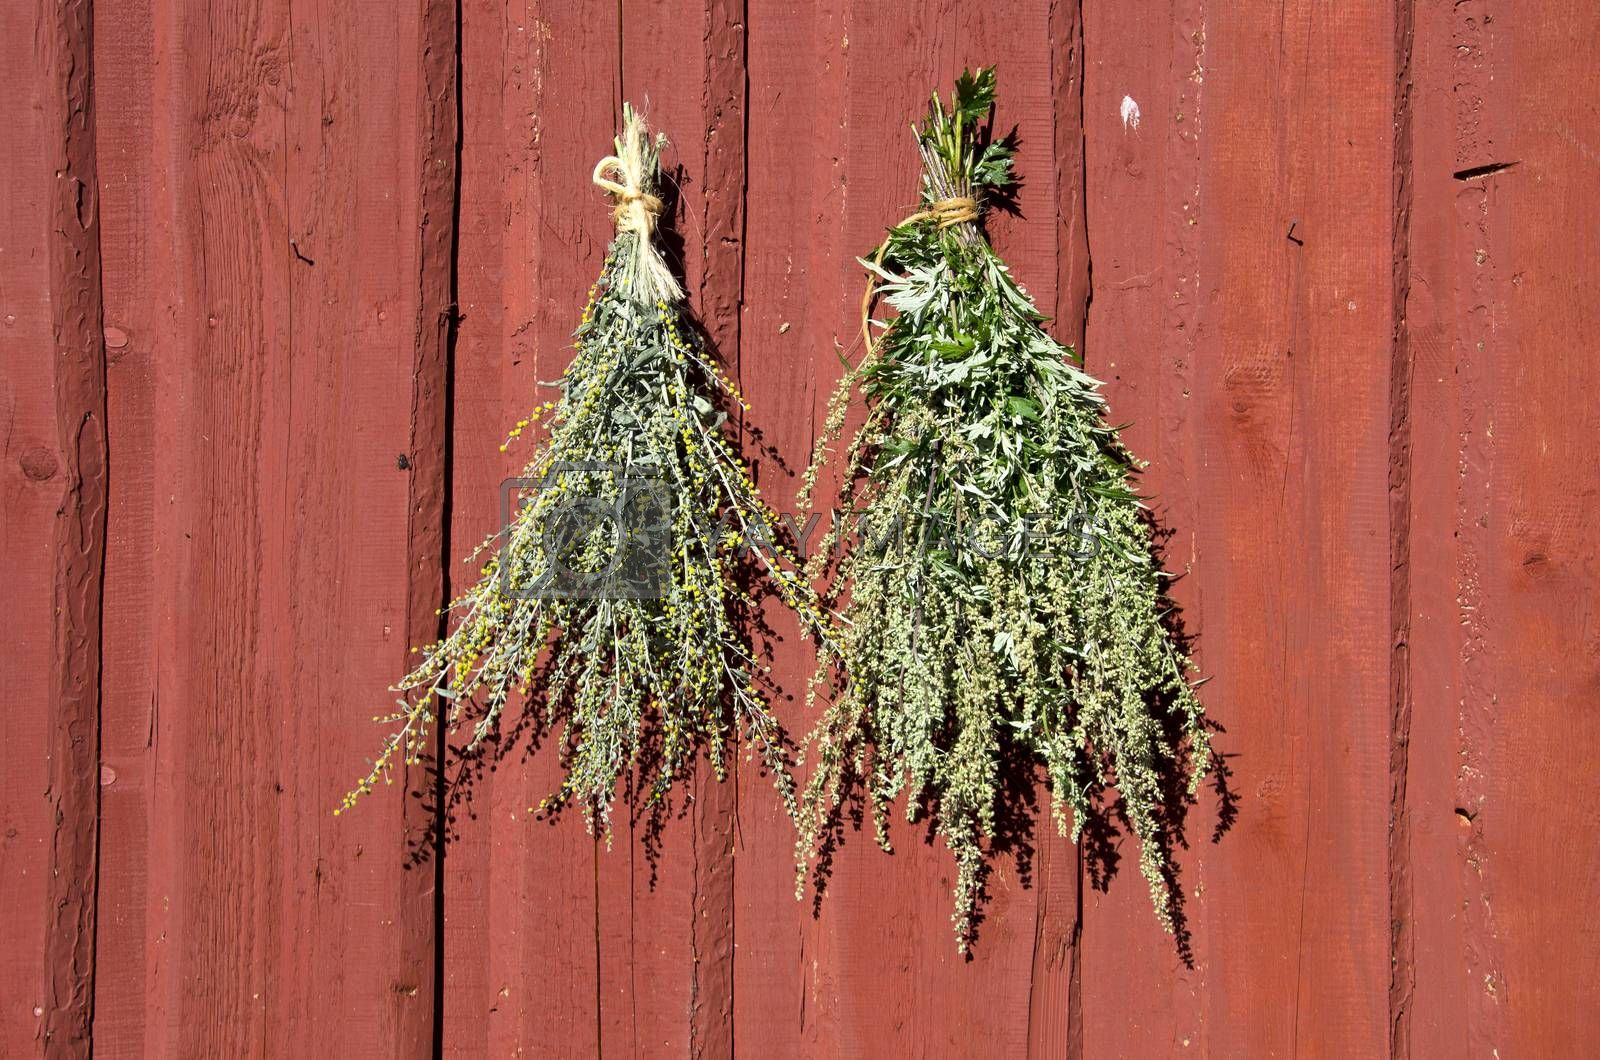 Royalty free image of Bundles of fresh herbs hanged to dry  on wooden wall by alis_photo